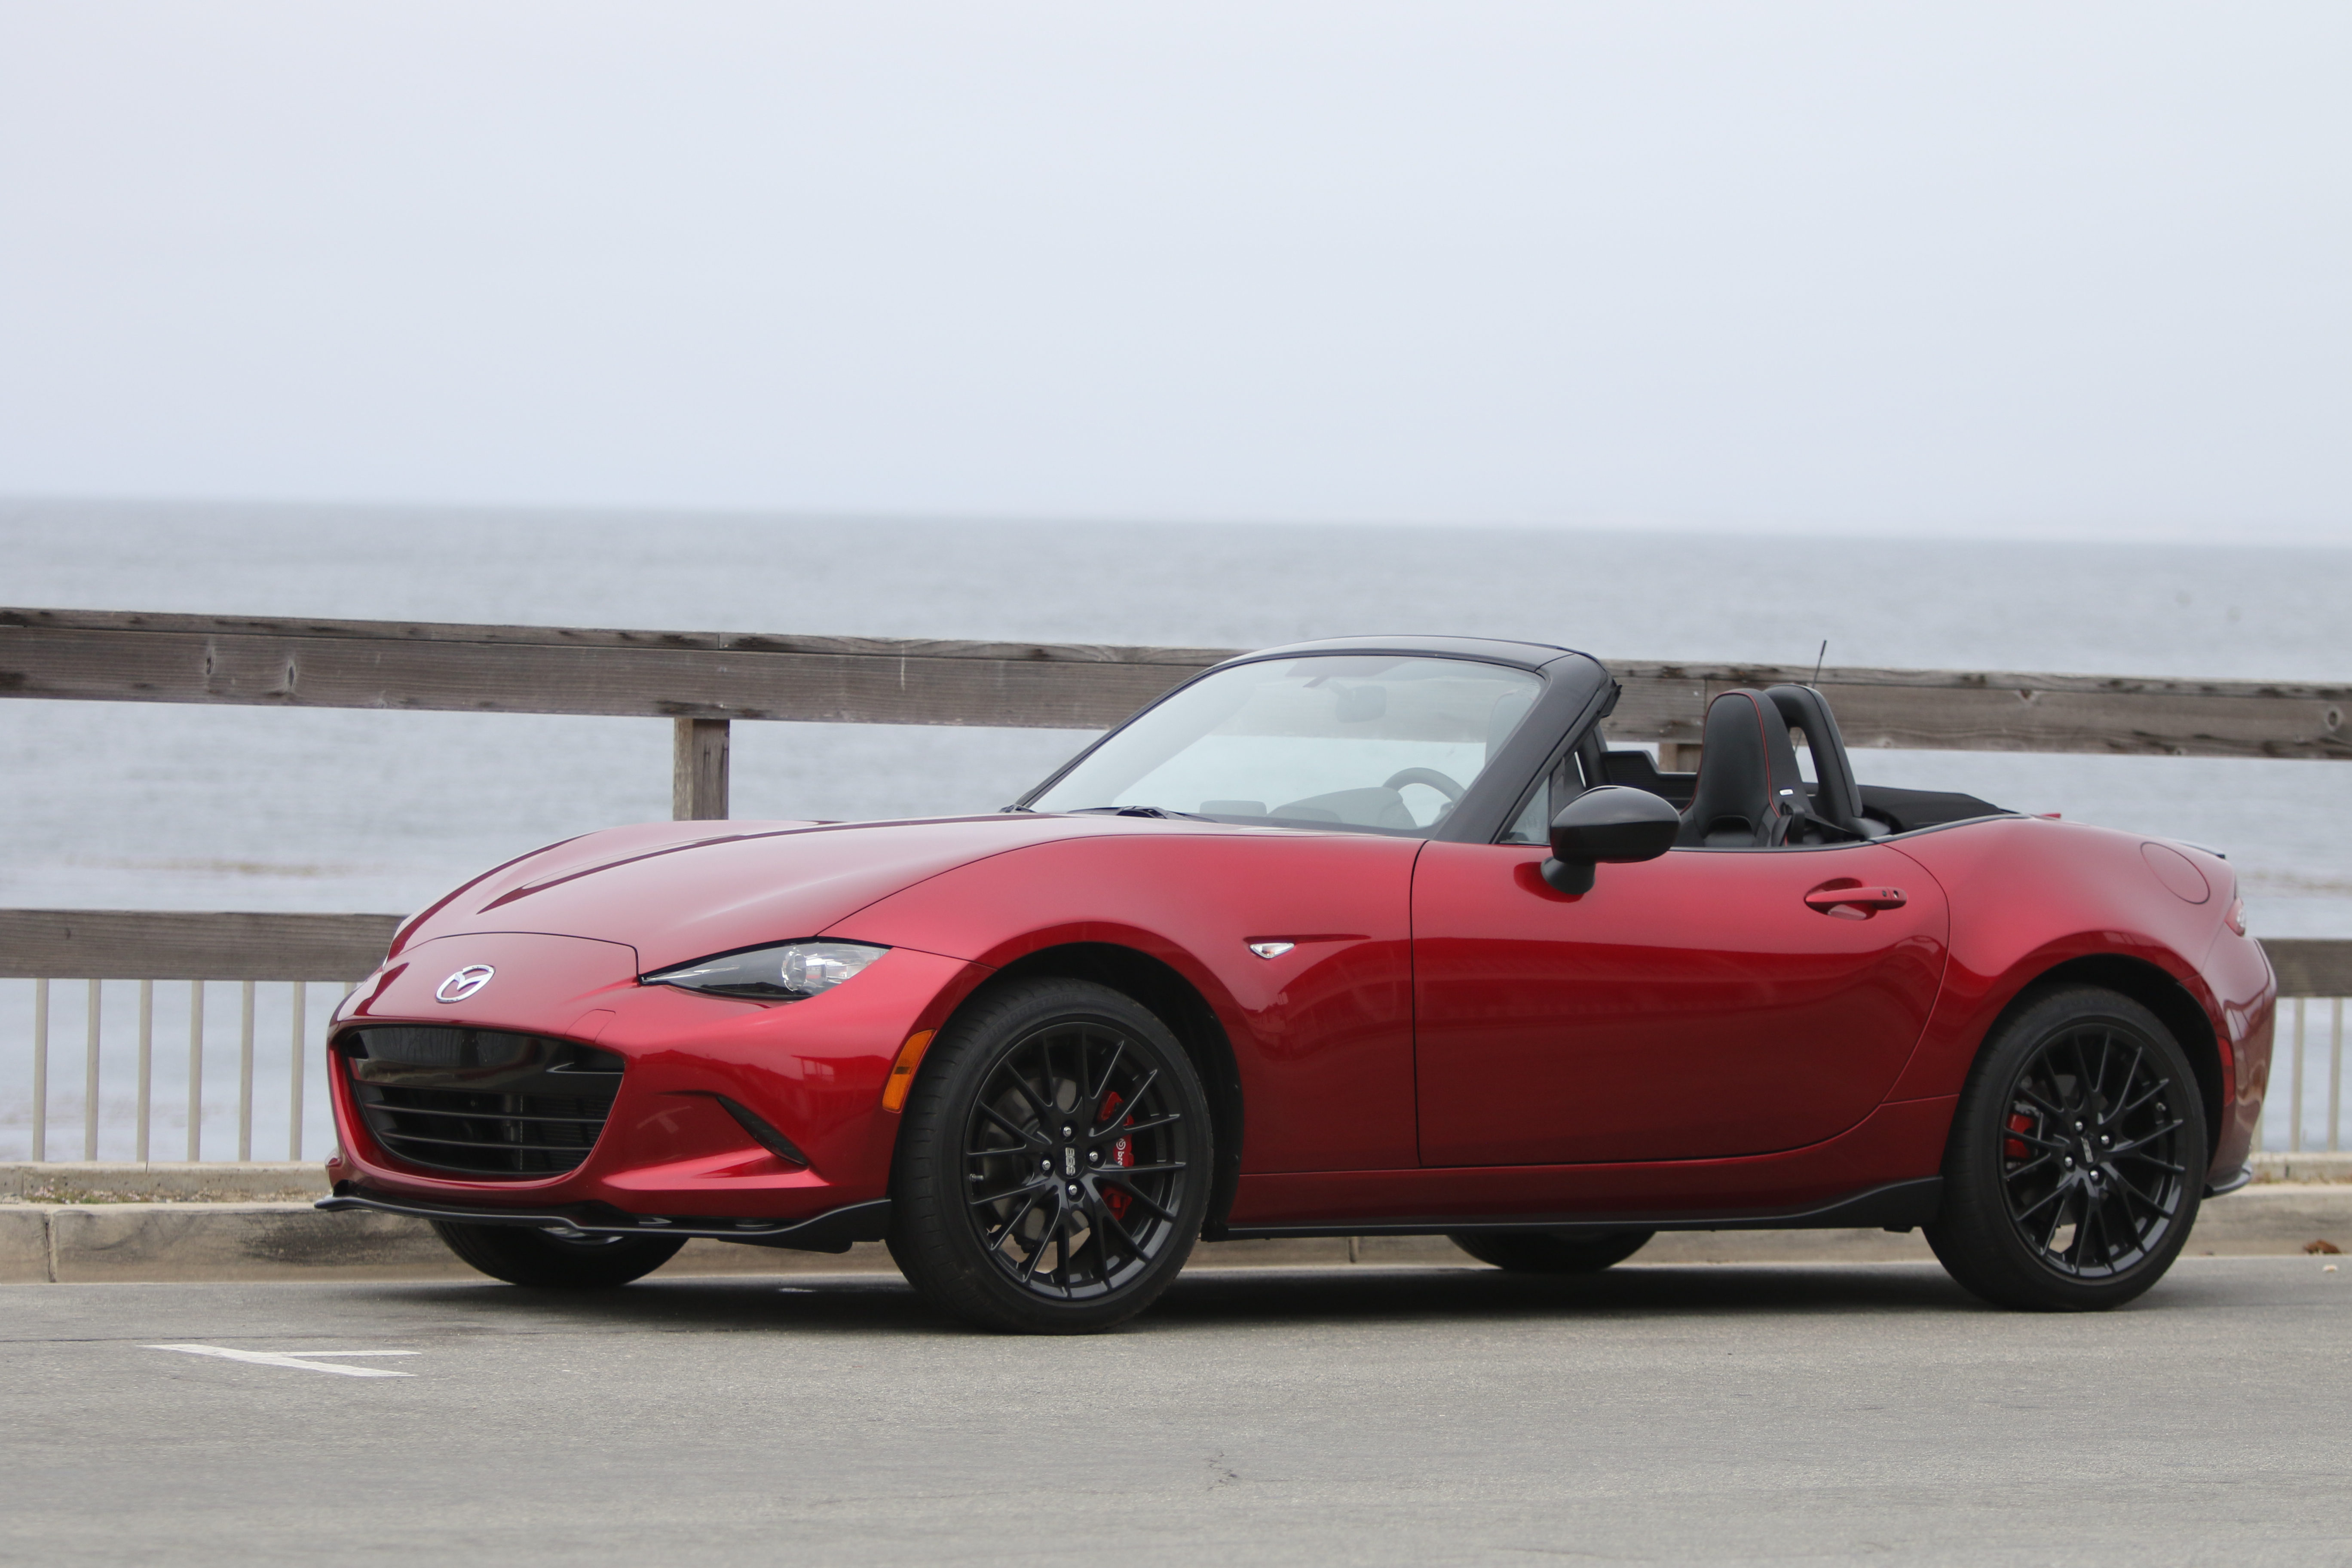 Full Review and Driving Impressions: 2019 Mazda MX-5 Miata